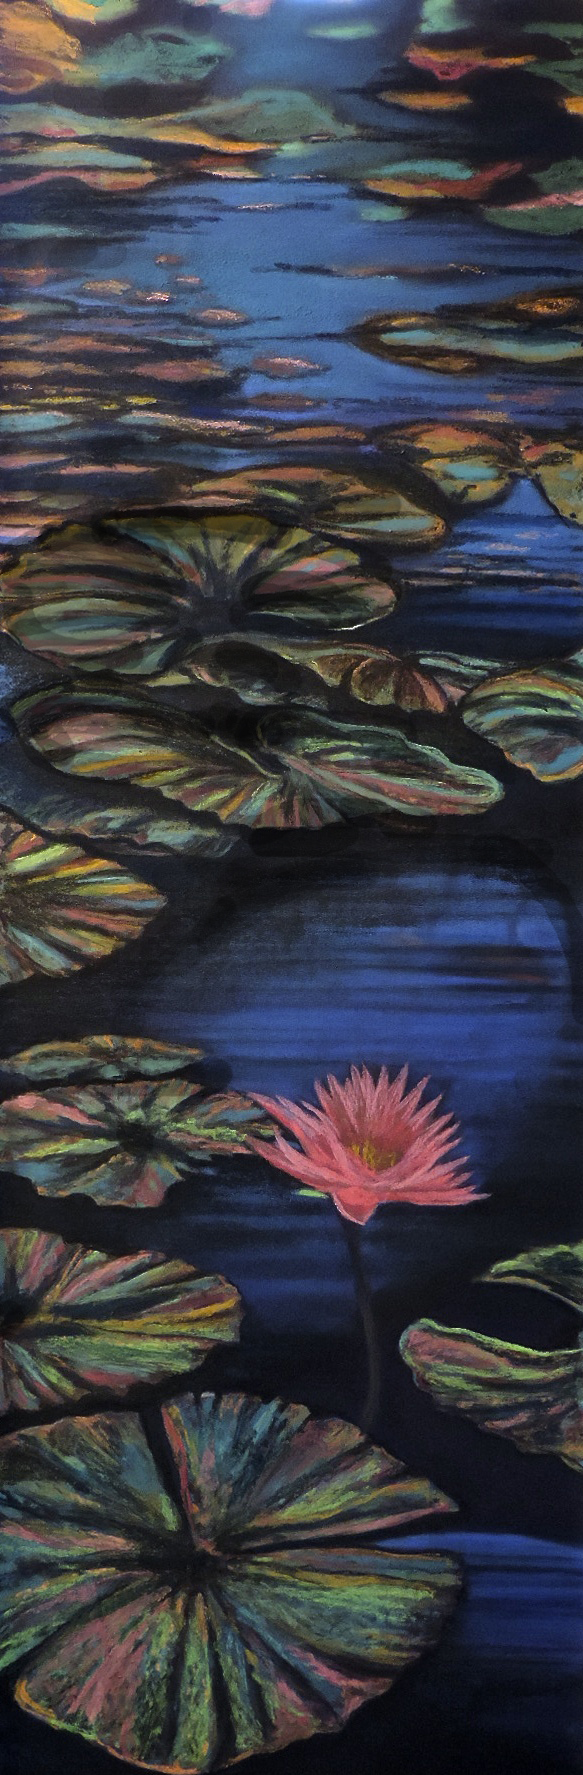 """WATER LILY"", GIVERNY, FRANCE  Pastel  11.5 X 36 Cheri Ginsburg ©"